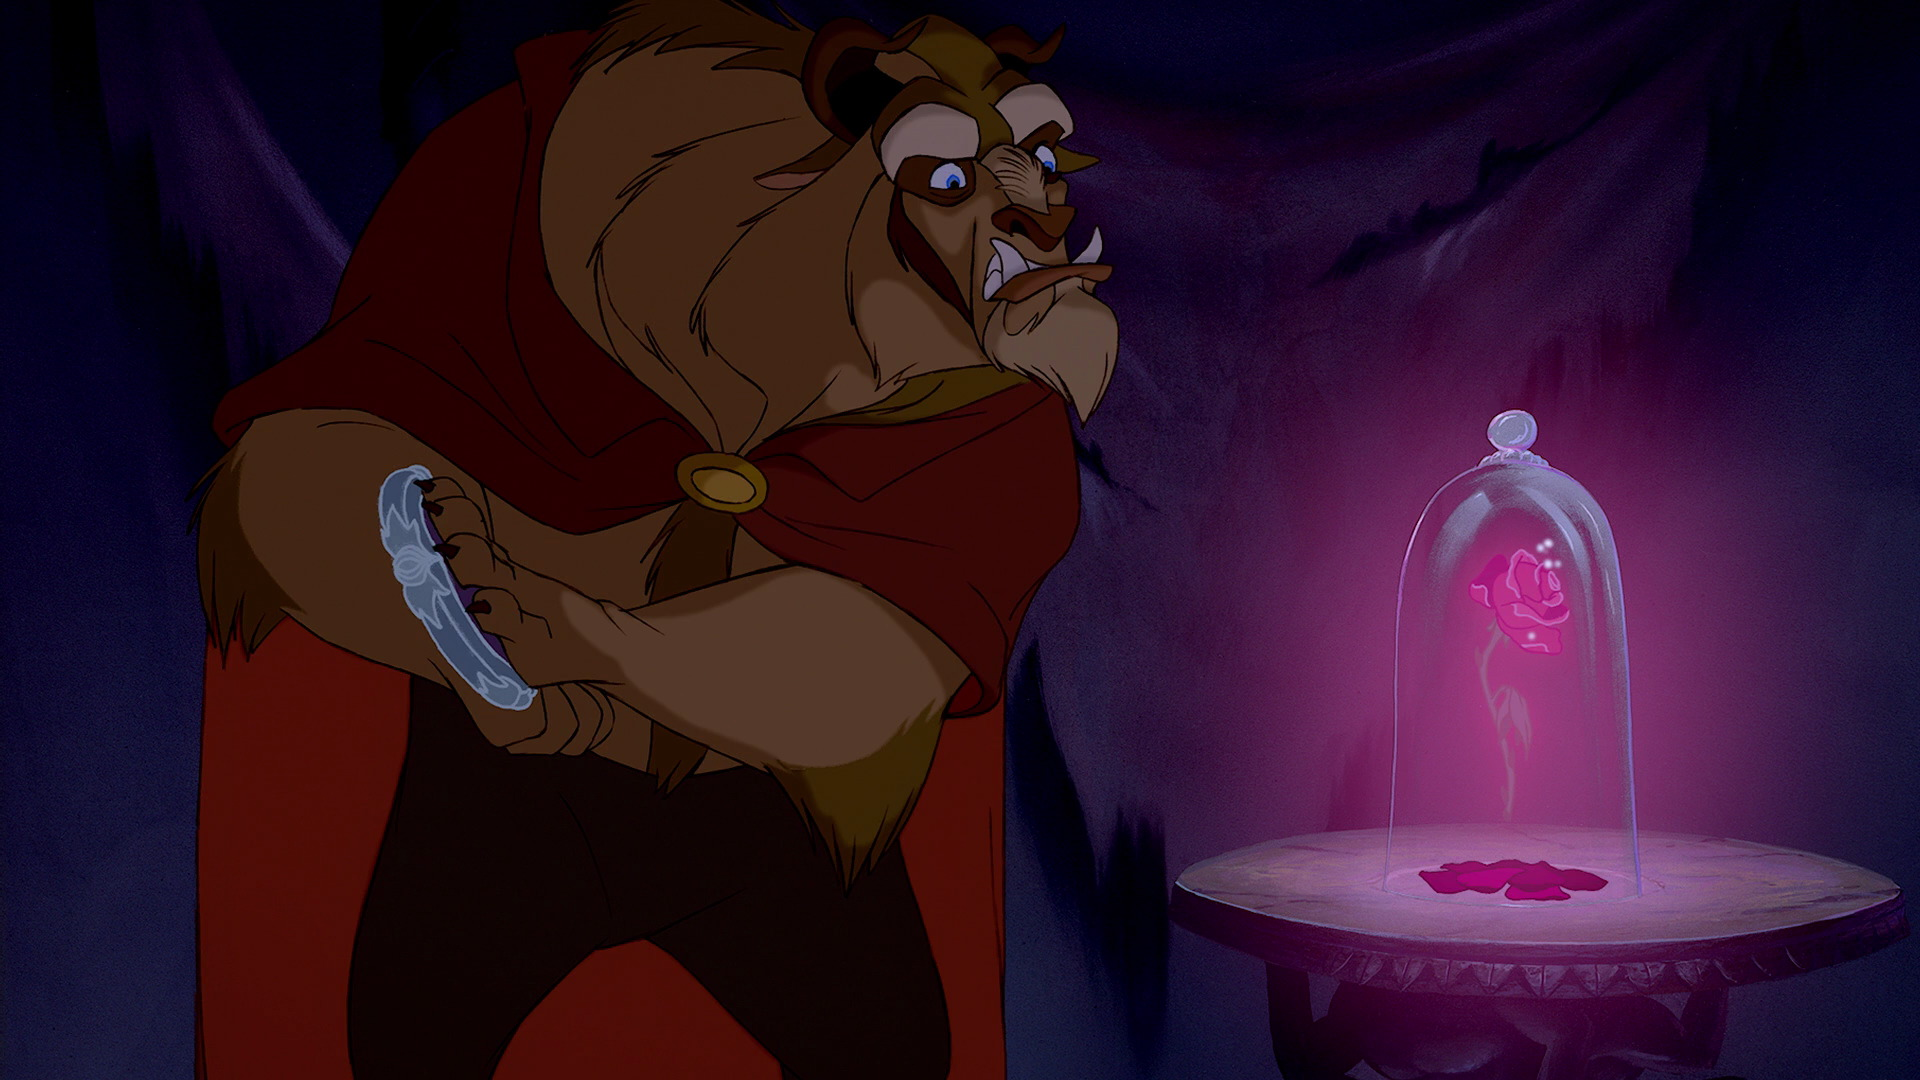 beastly compared to beauty and the In disney's 1991 animated version of beauty and the beast, the beast looked very much like a gentle lion there were a couple of small horns poking out of his head, but those could have easily been mistaken as tufts of hair.